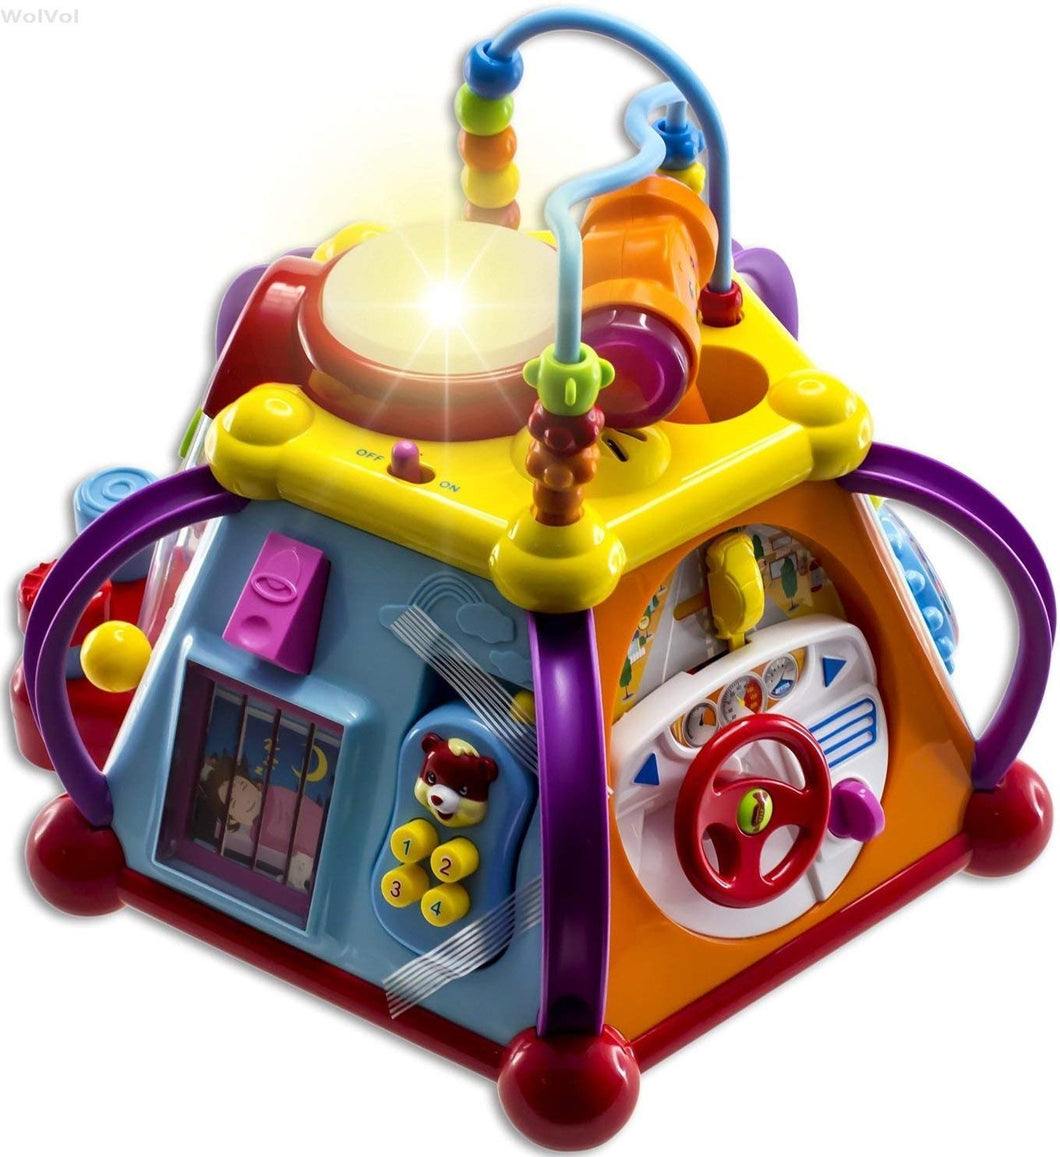 WolVol Educational Kids Toddler Baby Toy Musical Activity Cube